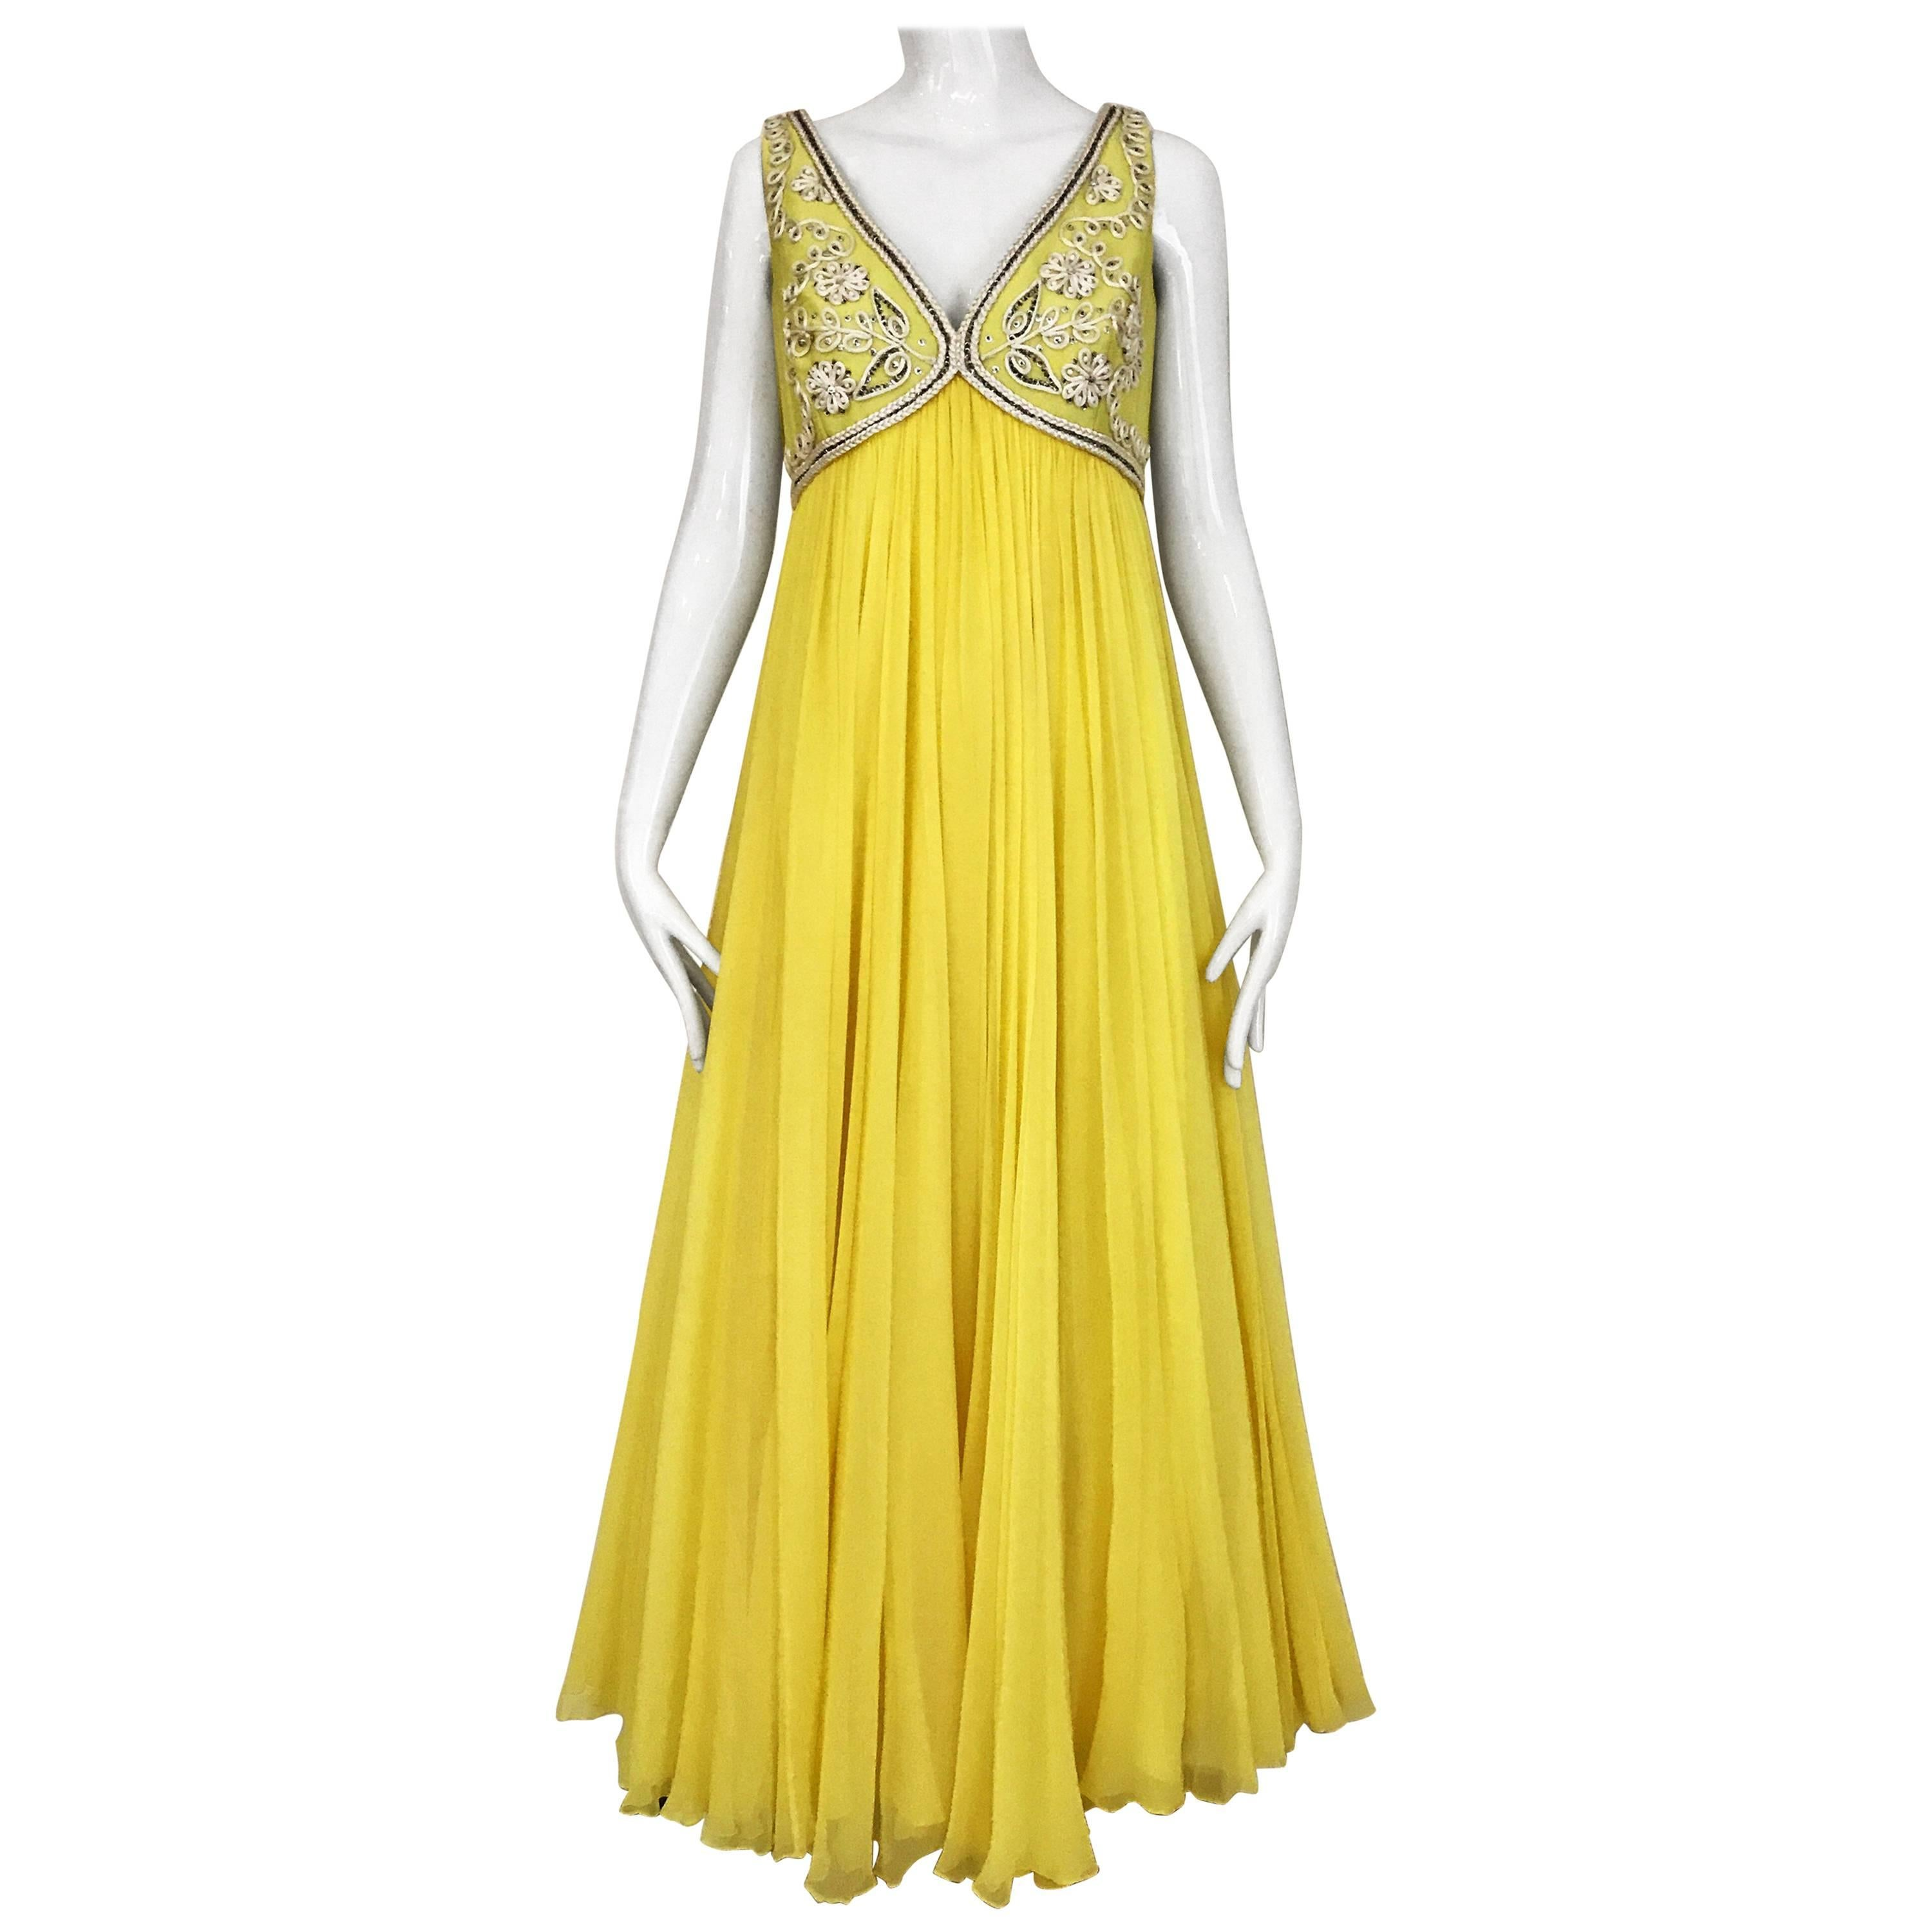 Vintage 1960s Yellow Silk Chiffon Gown with Jacket ensemble